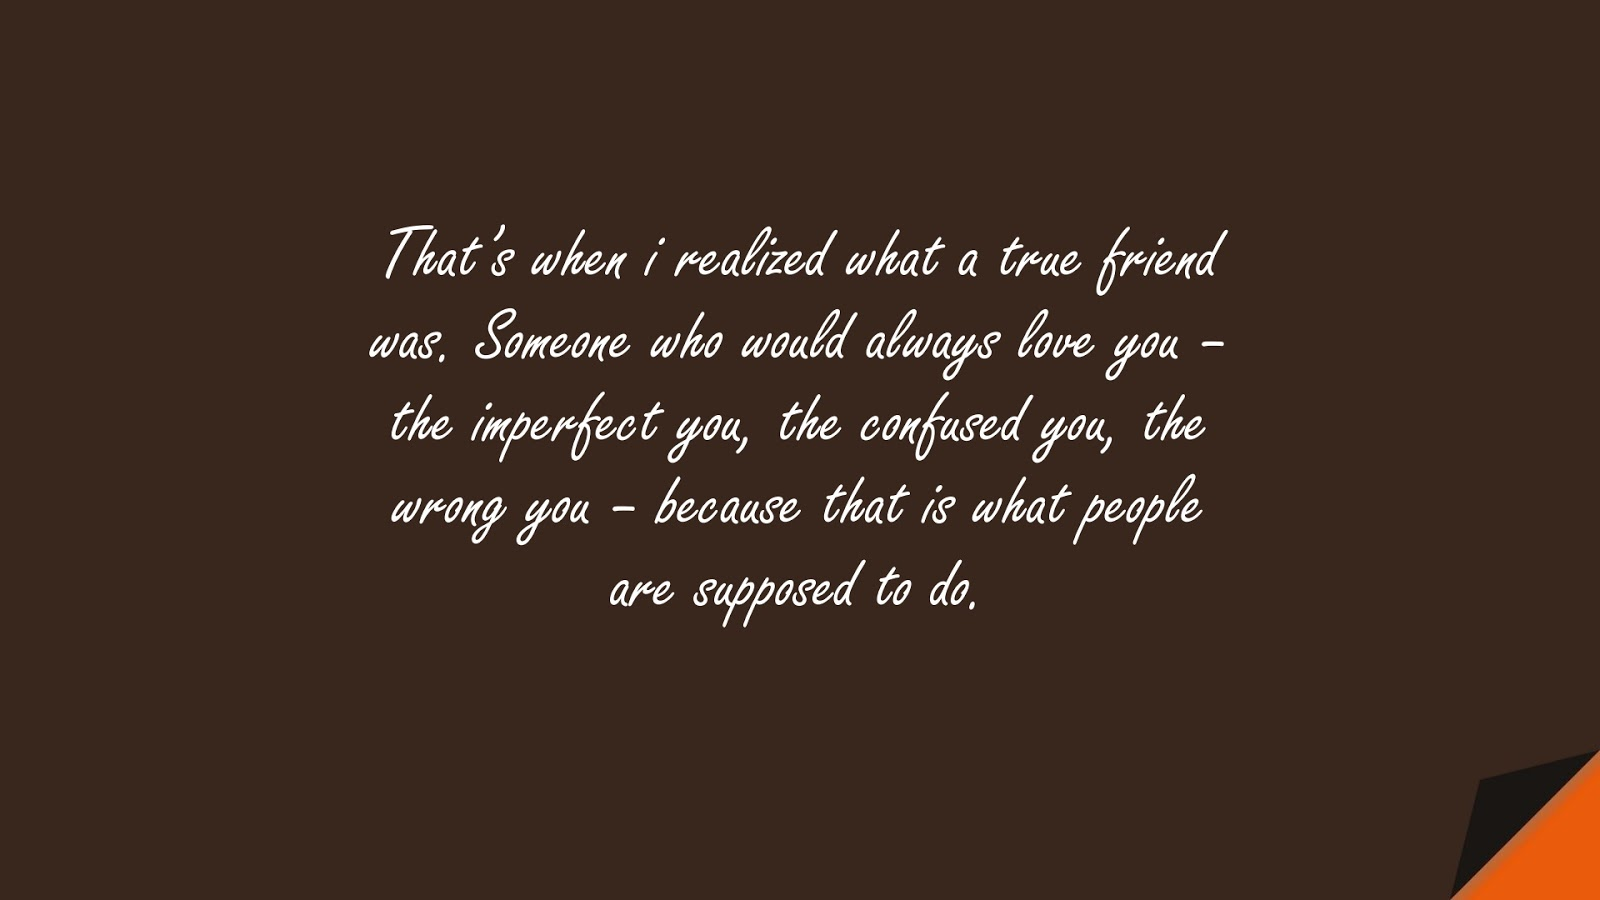 That's when i realized what a true friend was. Someone who would always love you – the imperfect you, the confused you, the wrong you – because that is what people are supposed to do.FALSE